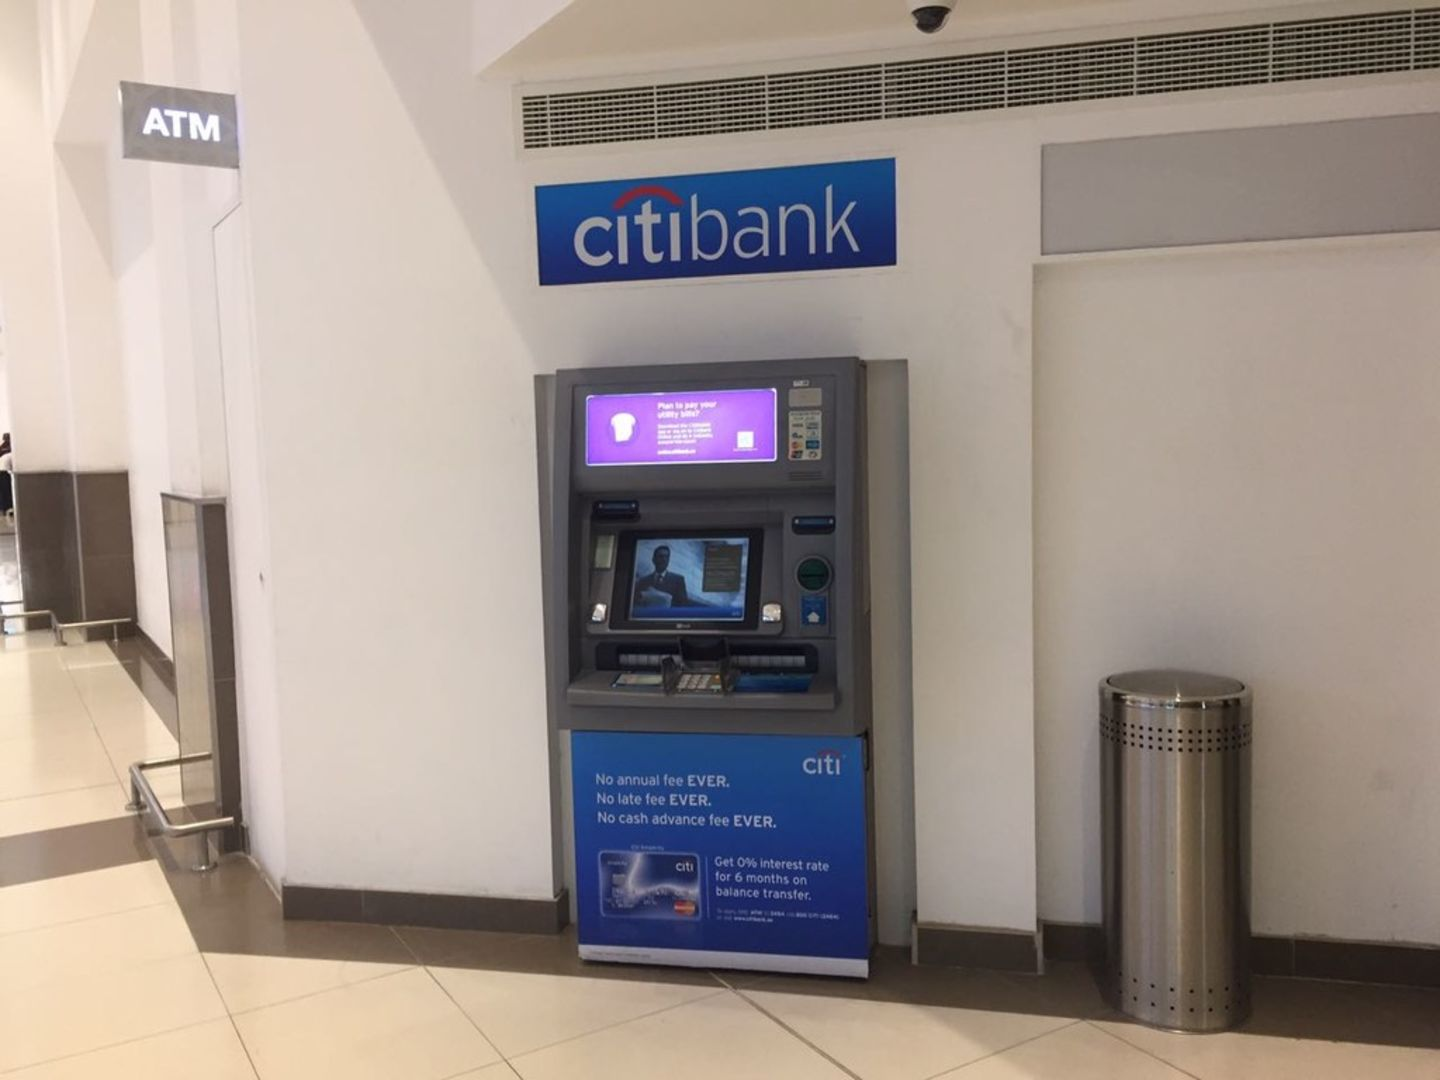 HiDubai-business-citi-bank-atm-cdm-finance-legal-banks-atms-al-shindagha-dubai